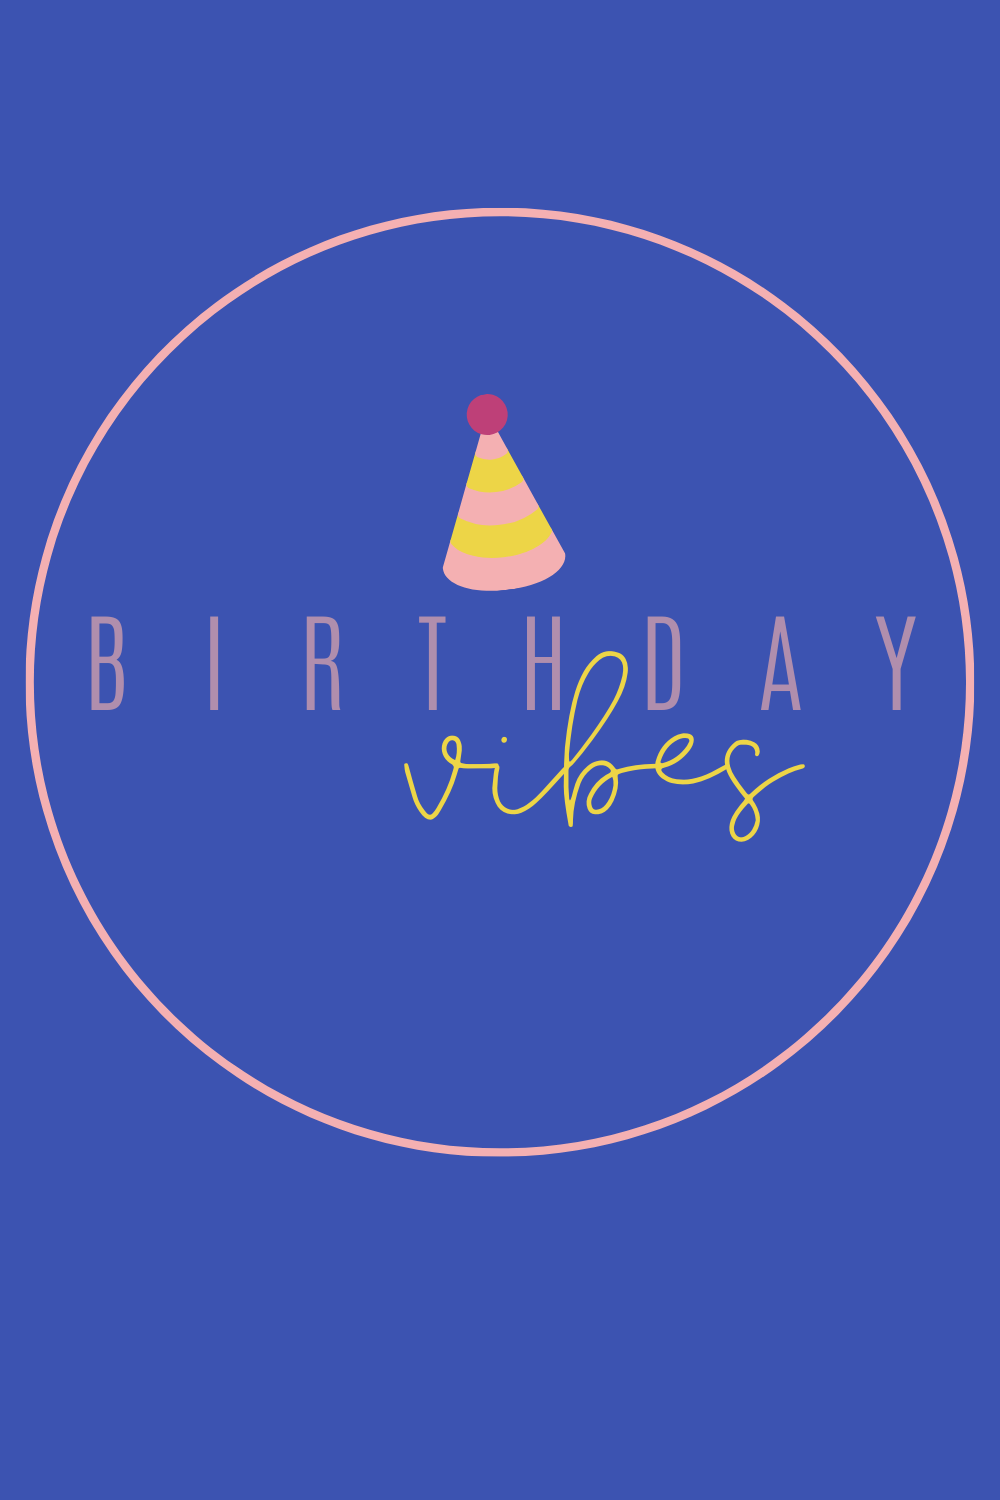 15th birthday vibes turning 15 quotes poster prints